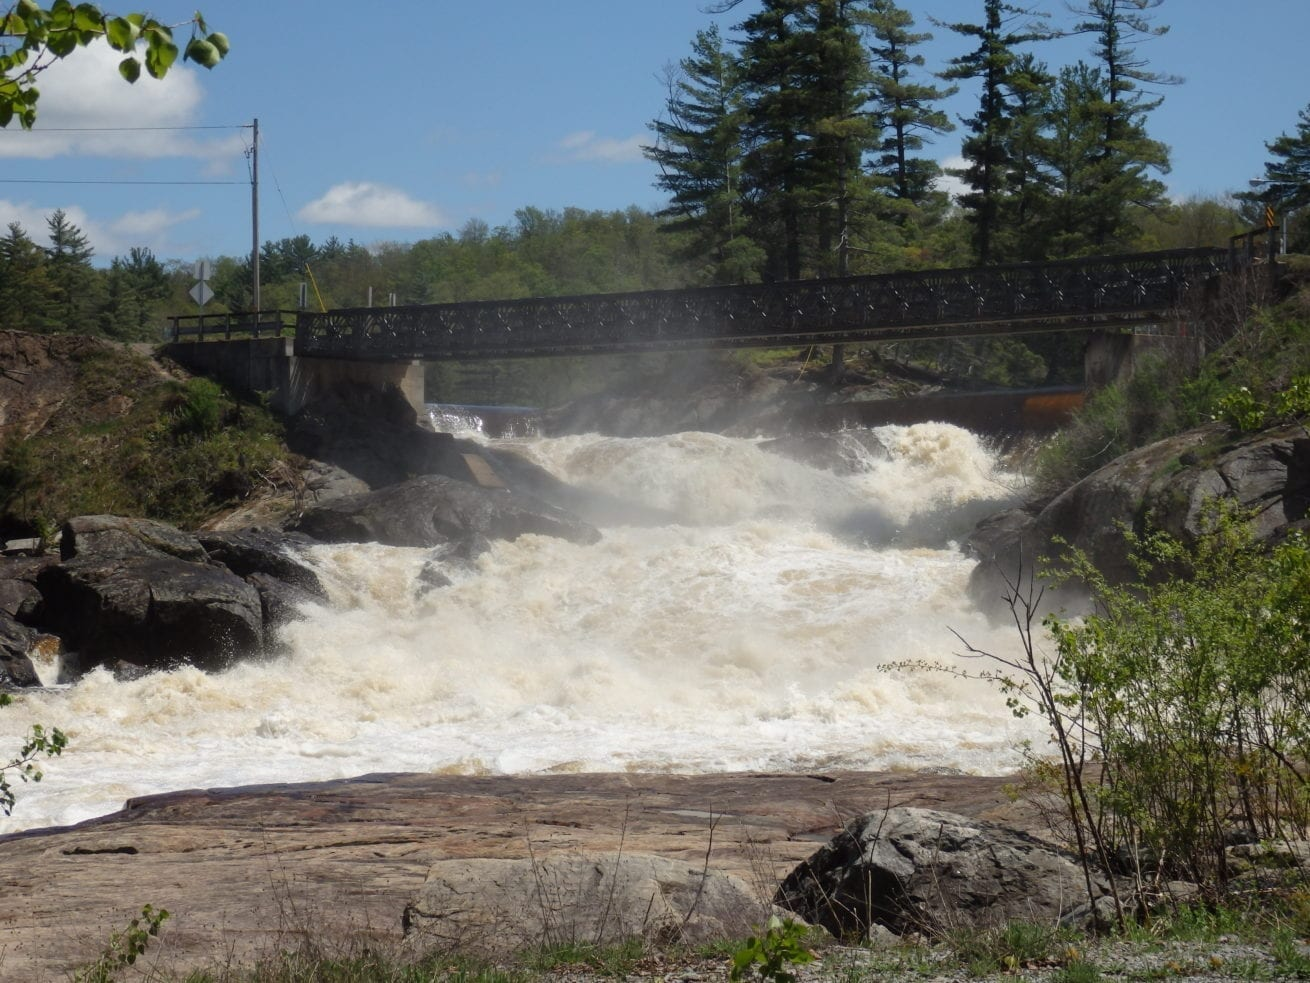 Lyonsdale Falls, Lewis County, New York